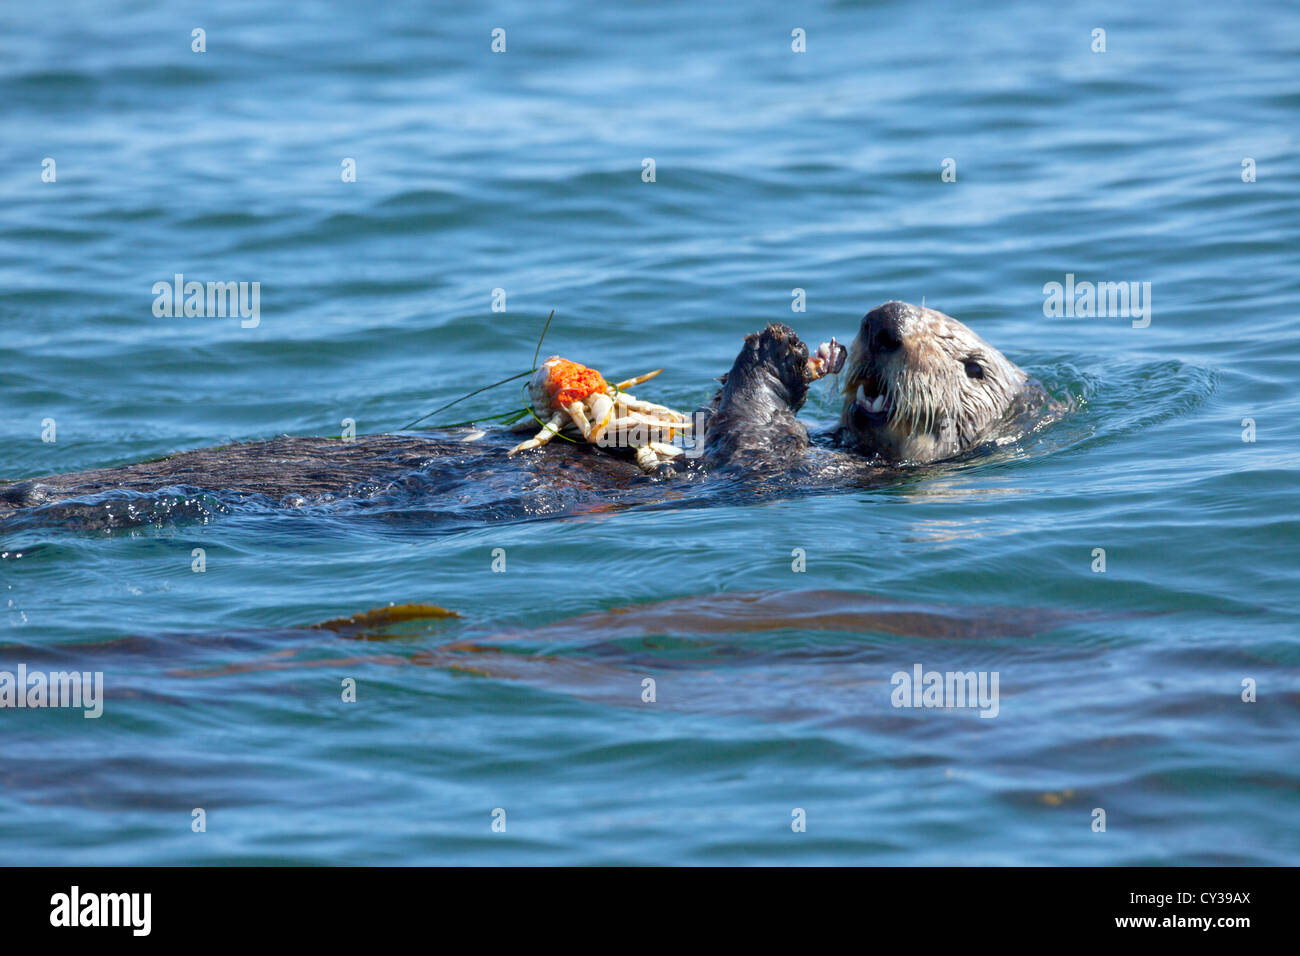 A Southern Sea Otter eats a crab in Elkhorn Slough, California. - Stock Image